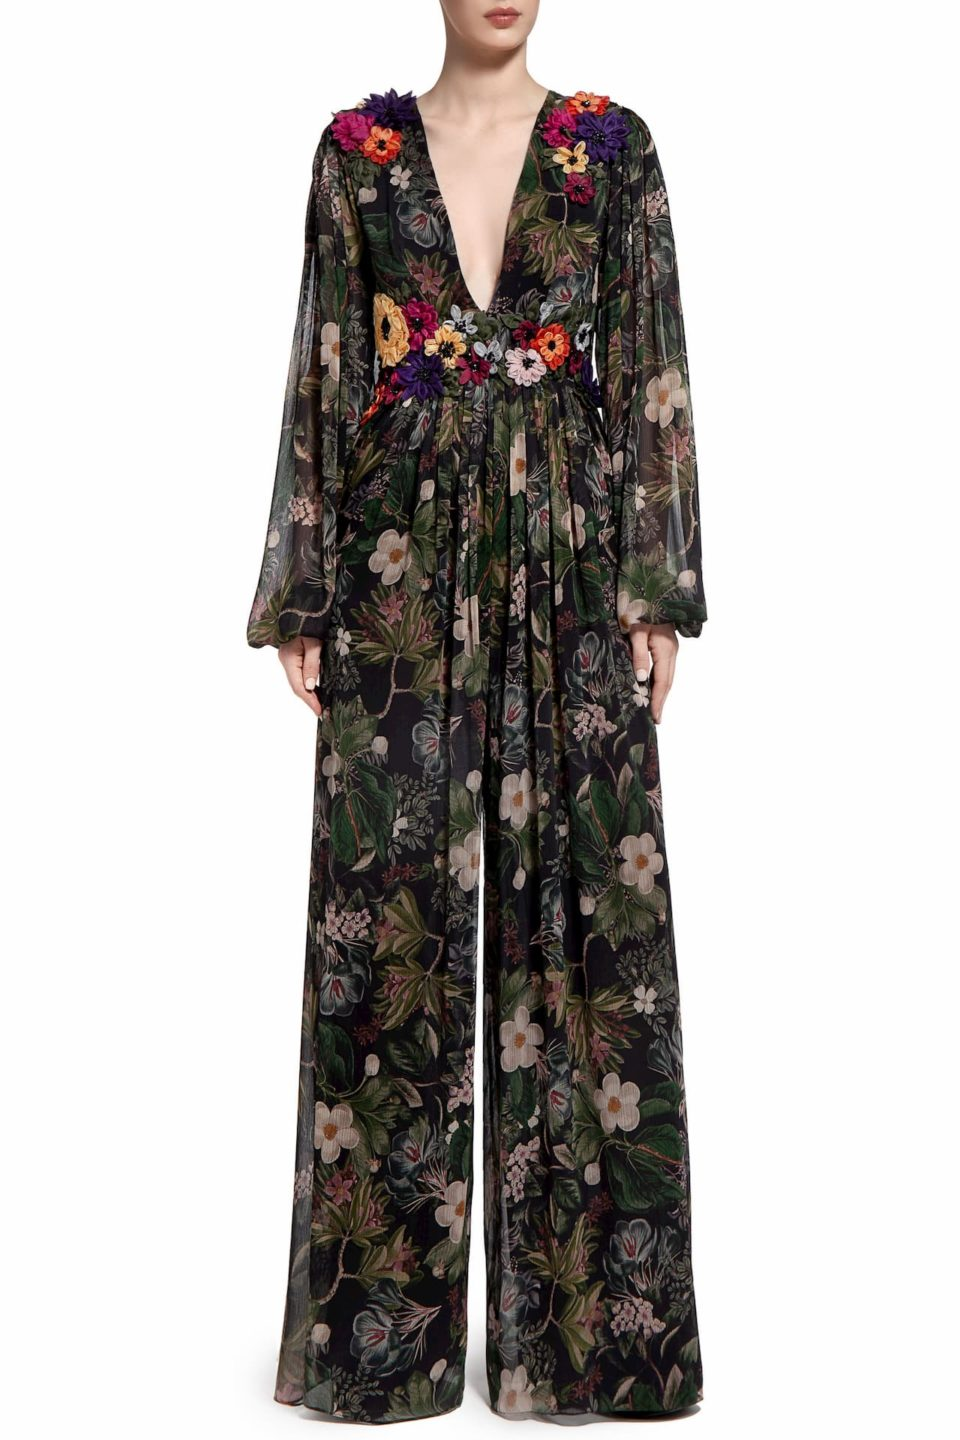 Minnitha PR2034 Black Floral-Printed Chiffon Jumpsuit with Flower Appliques